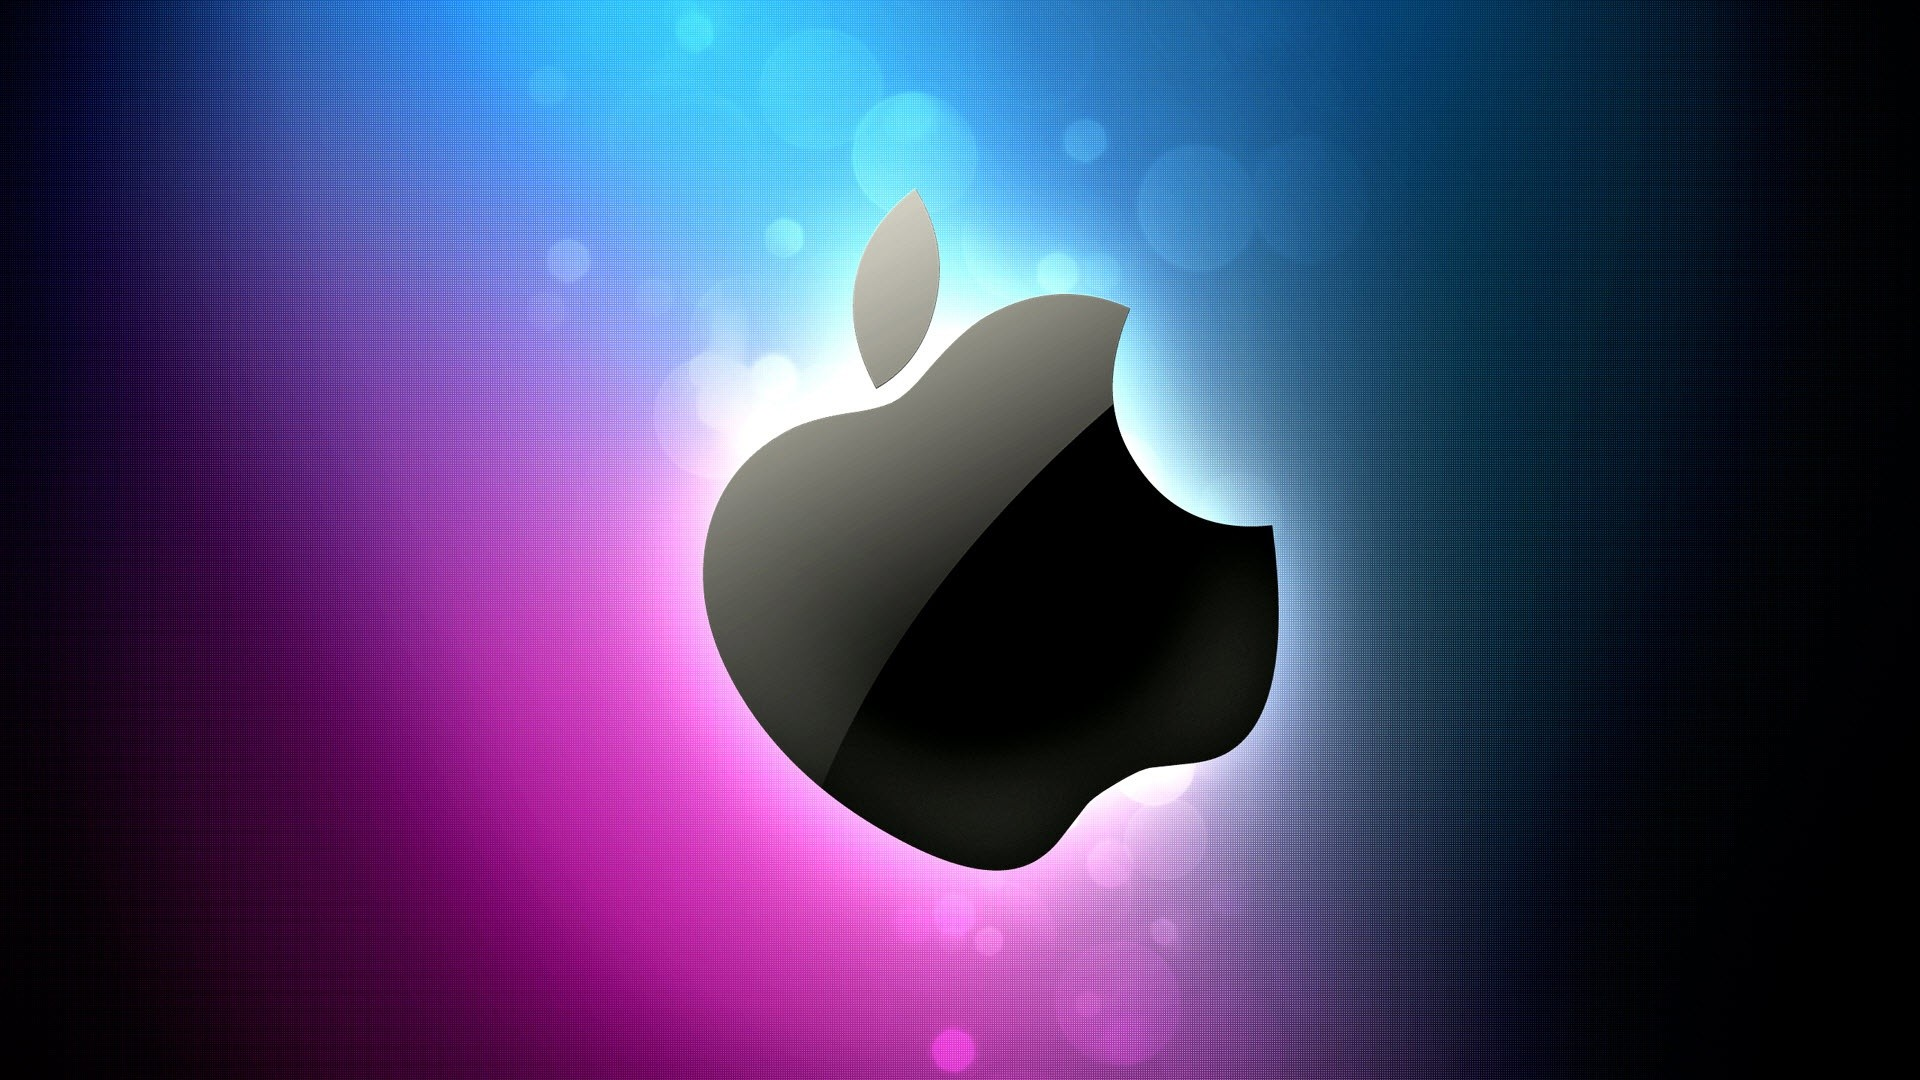 Res: 1920x1080, HP Wallpaper. . Colorful HD Apple